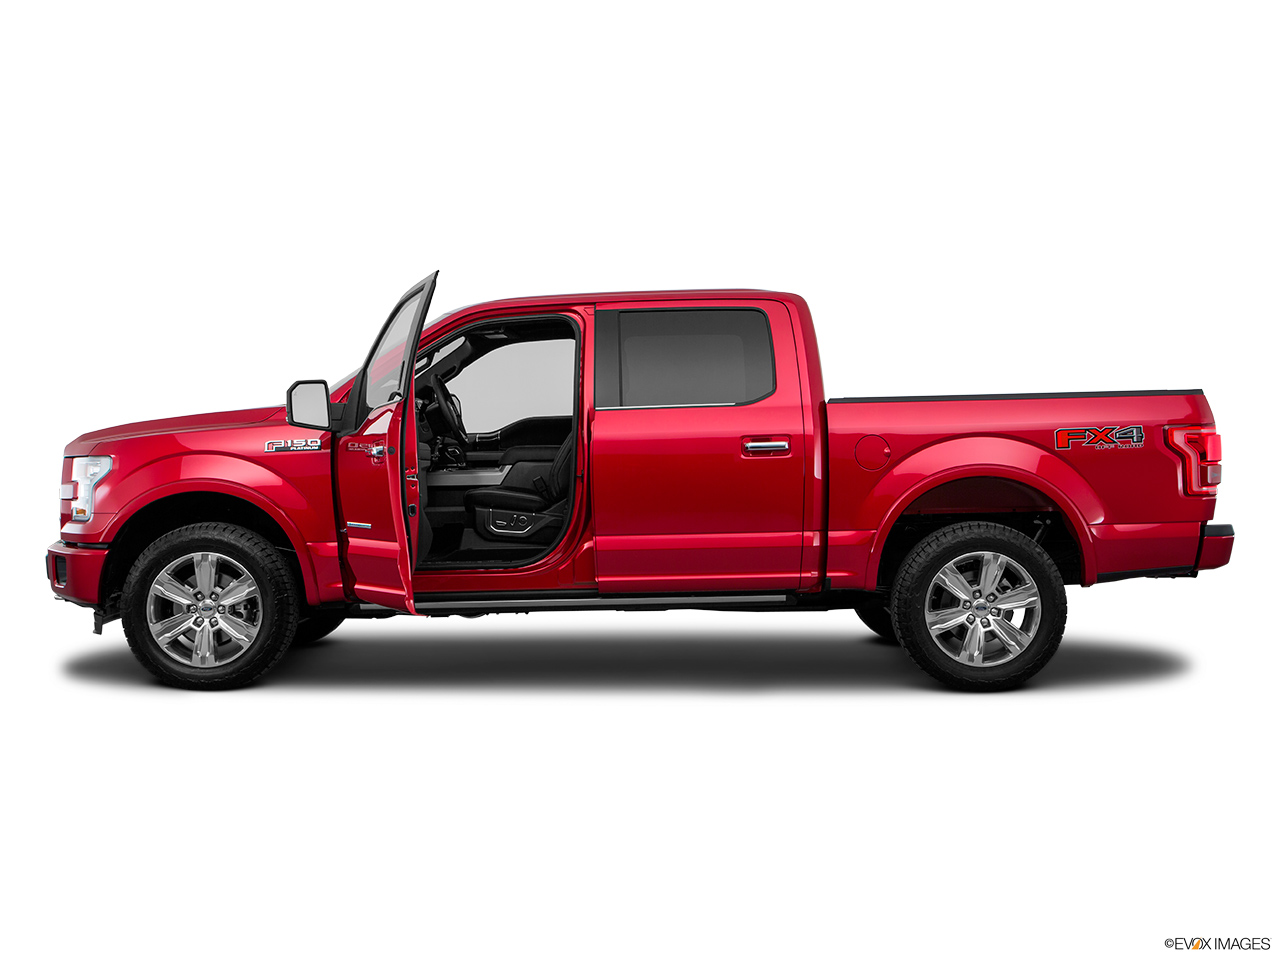 car features list for ford f 150 2017 3 5l ecoboost crew cab platinum fx4 luxury pack kuwait. Black Bedroom Furniture Sets. Home Design Ideas